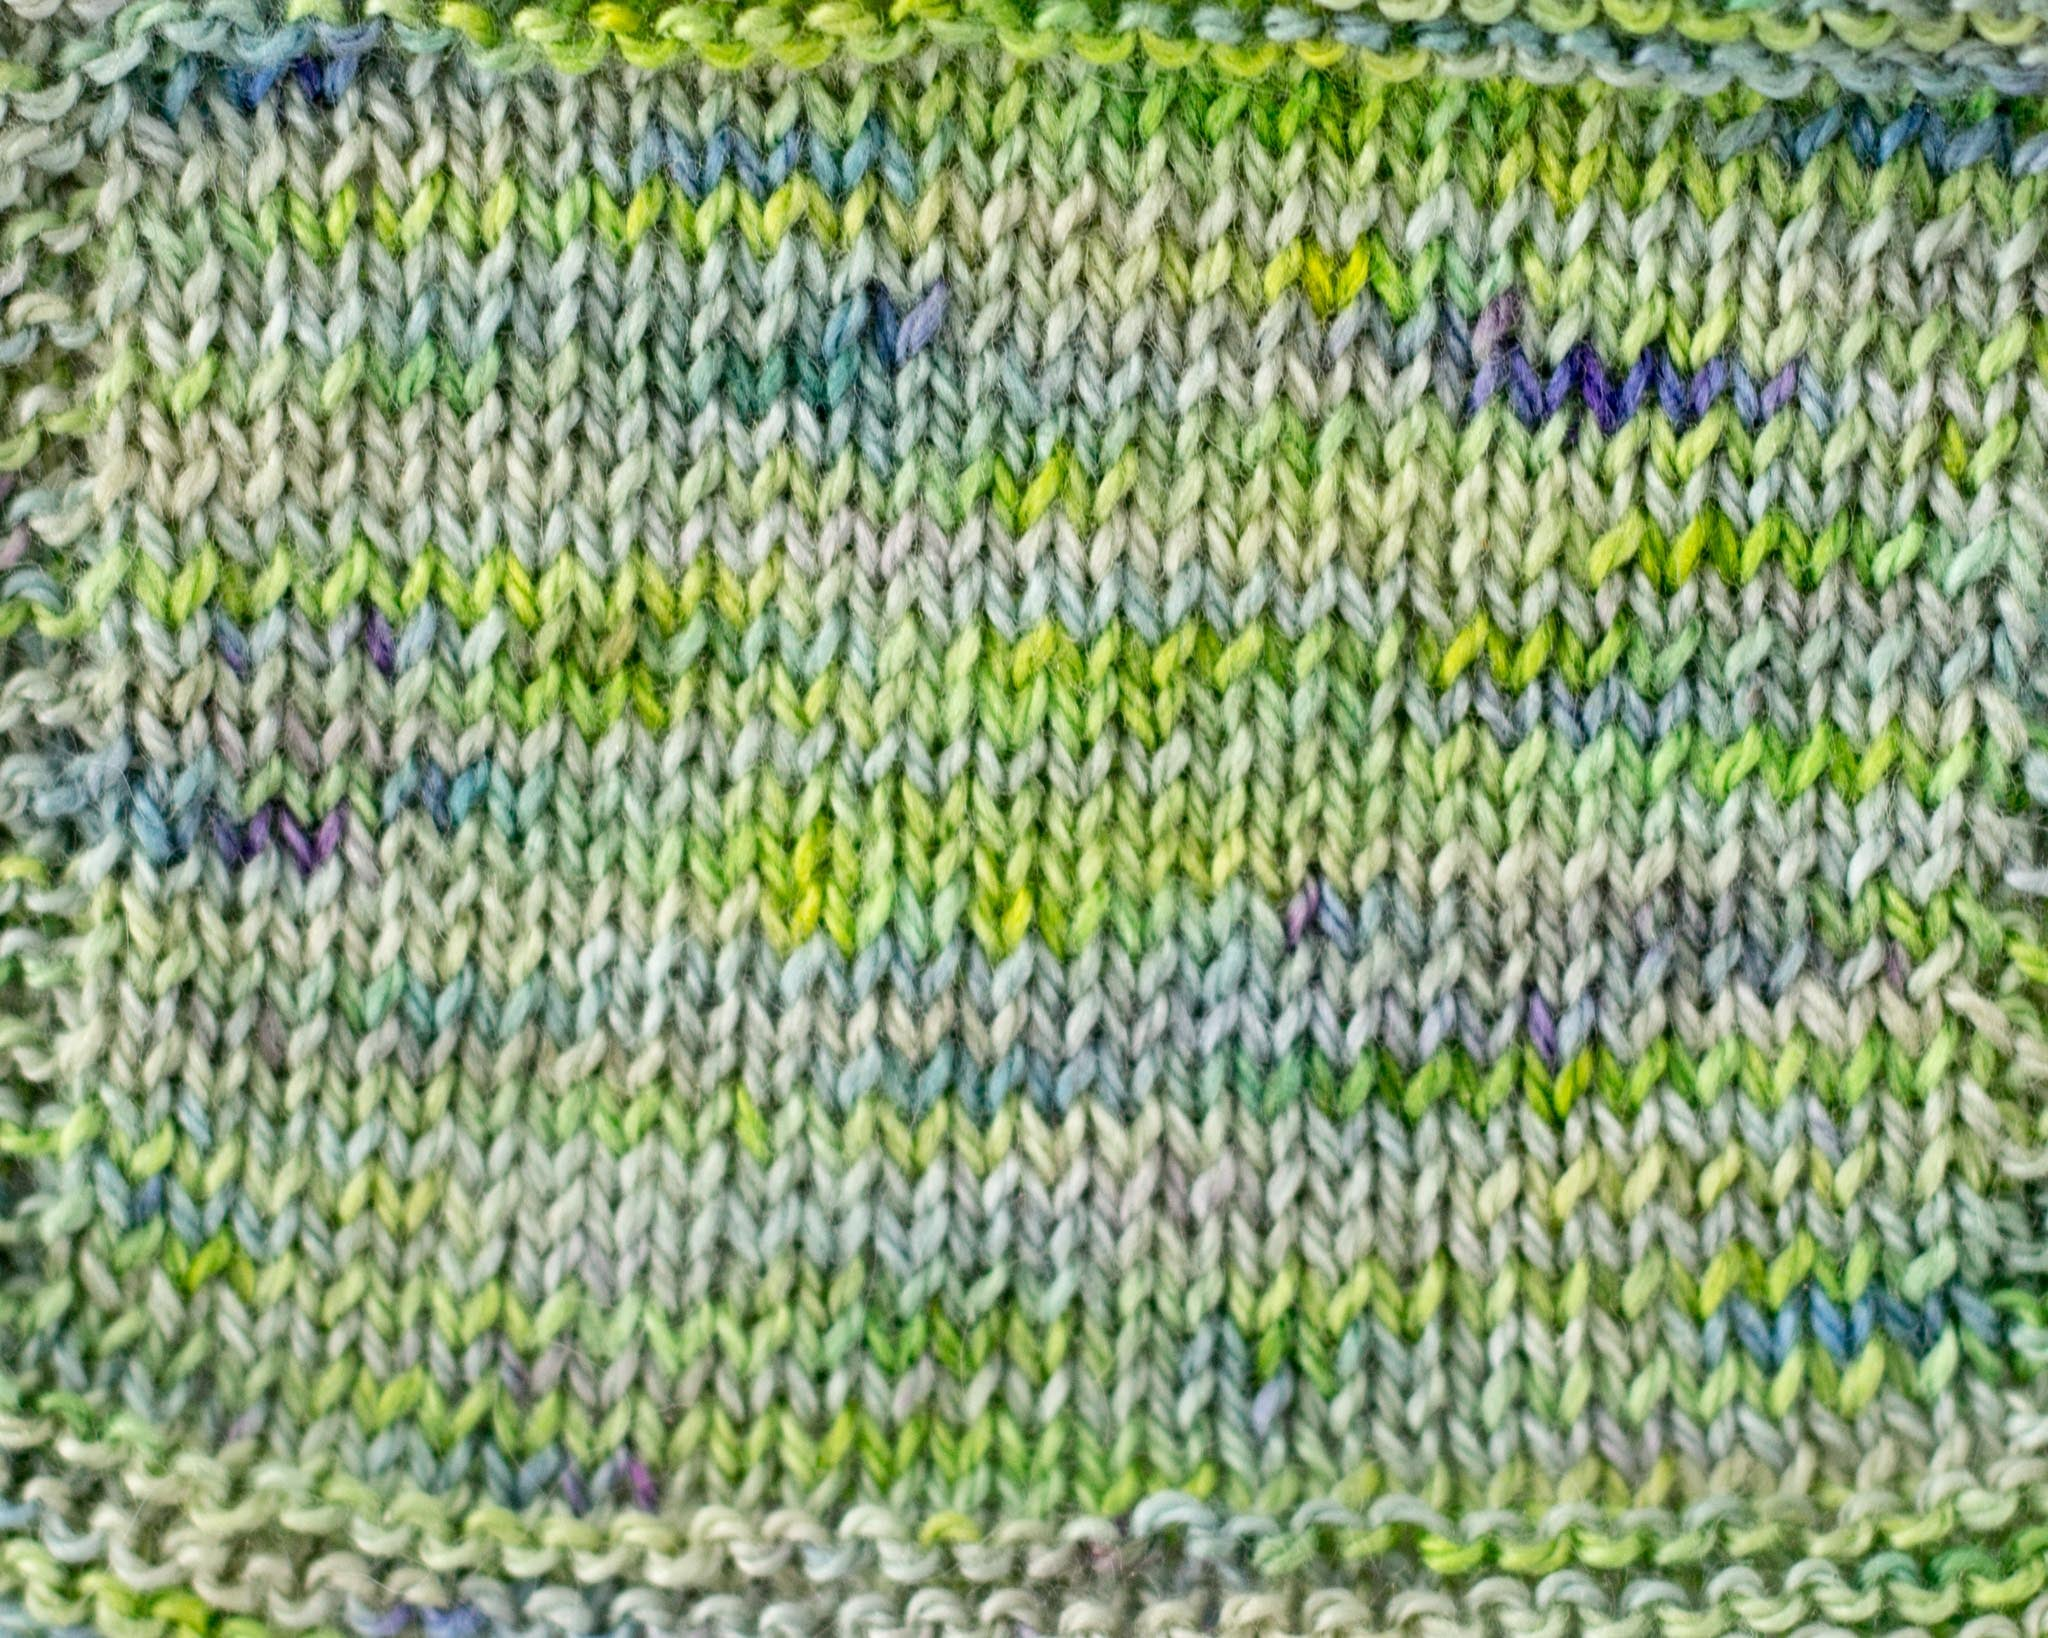 Organic & Fair Trade Cotton Yarn-Green, Purple, and White Swatch